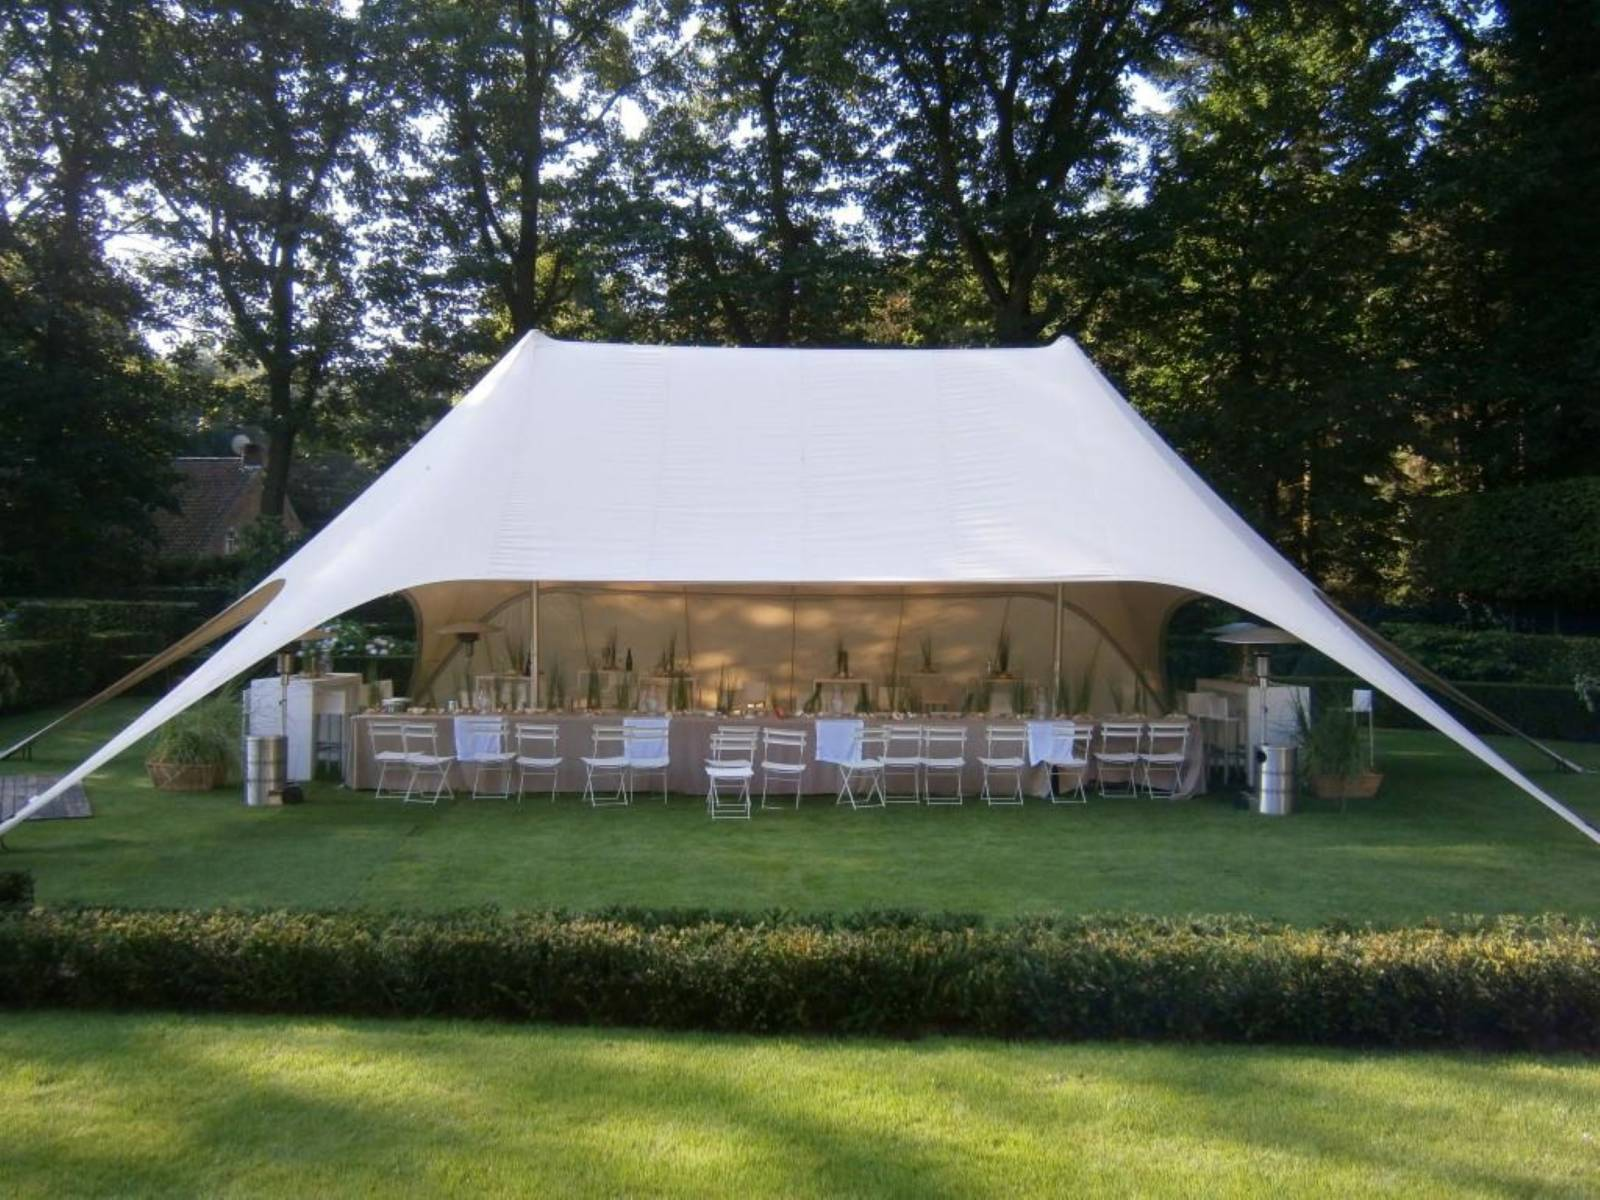 House of Weddings Kasteel Te Lake Feestzaal Oost-Vlaanderen Catering Ceremonie Zulte Gent (14)